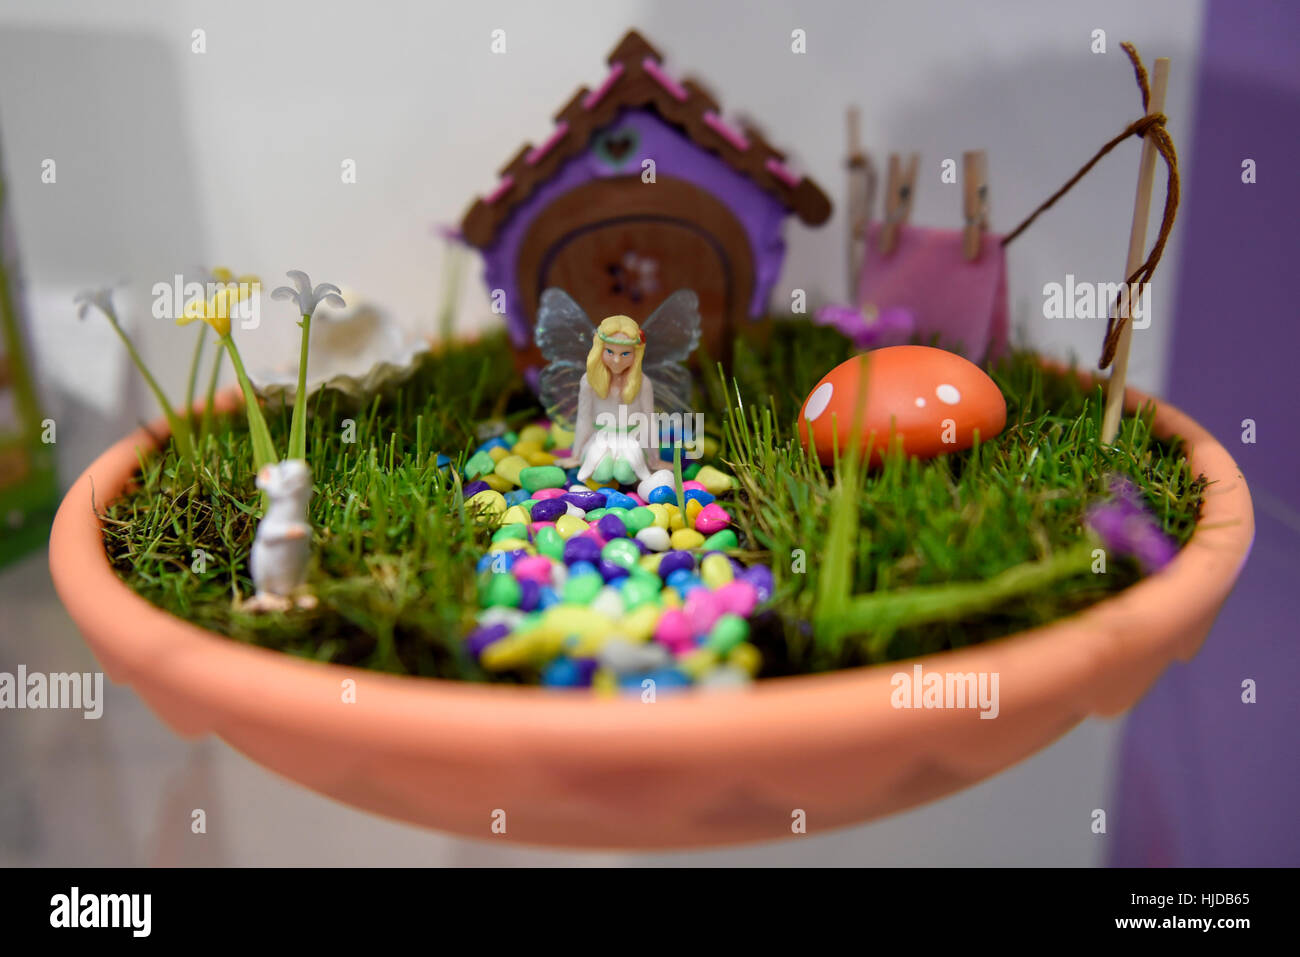 Fairy Garden Flower Pots London uk 24th jan 2017 a flower pot fairy garden from my a flower pot fairy garden from my little fairy garden on display at the opening day of the toy fair 2017 taking place at kensington olympia workwithnaturefo